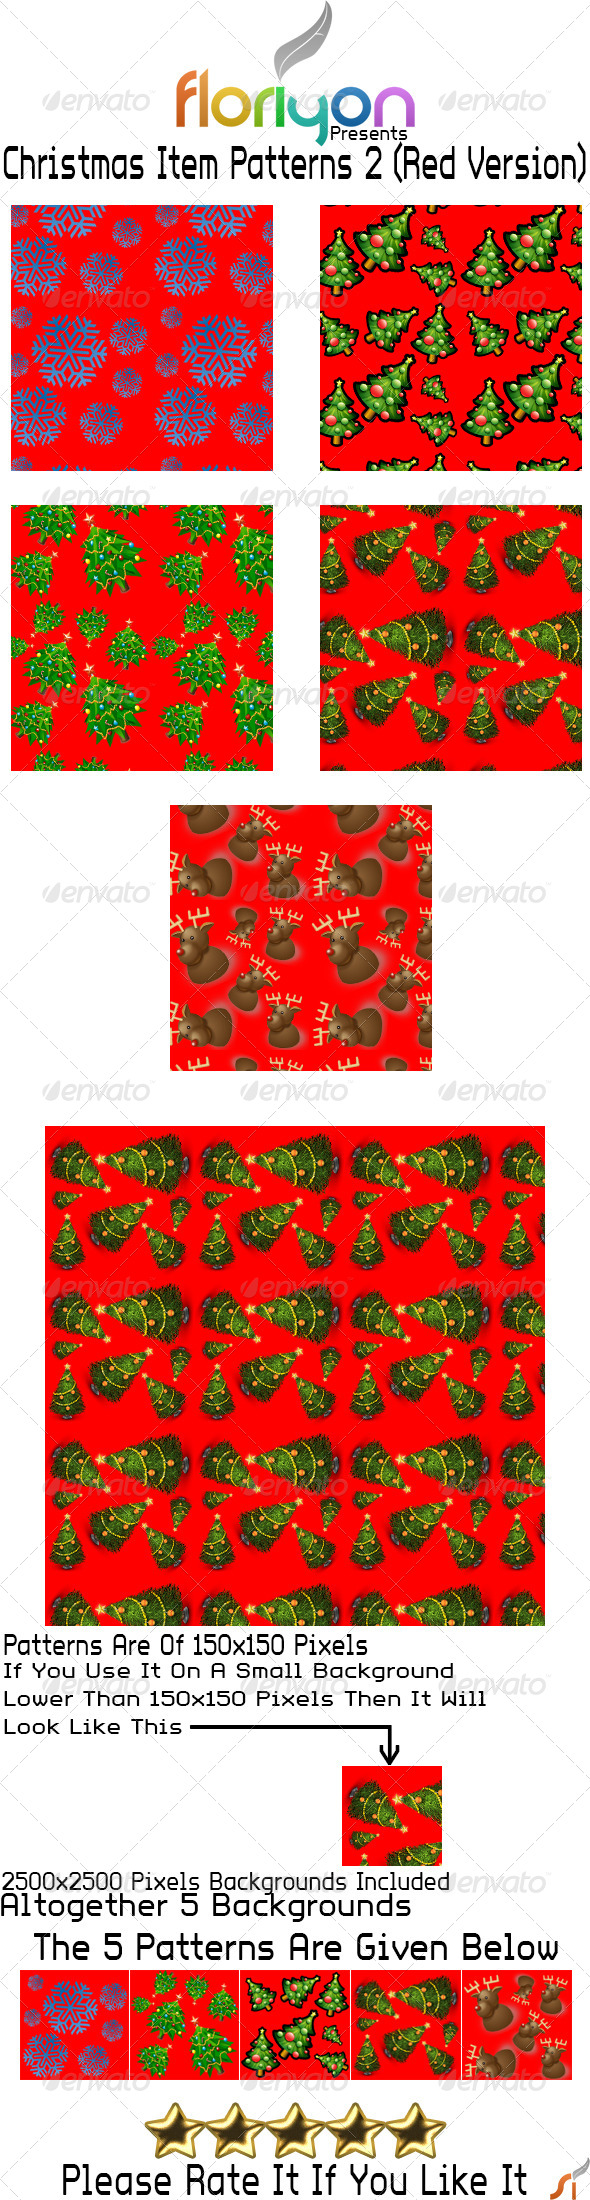 GraphicRiver Christmas Item Patterns 2 Red Version 4862897